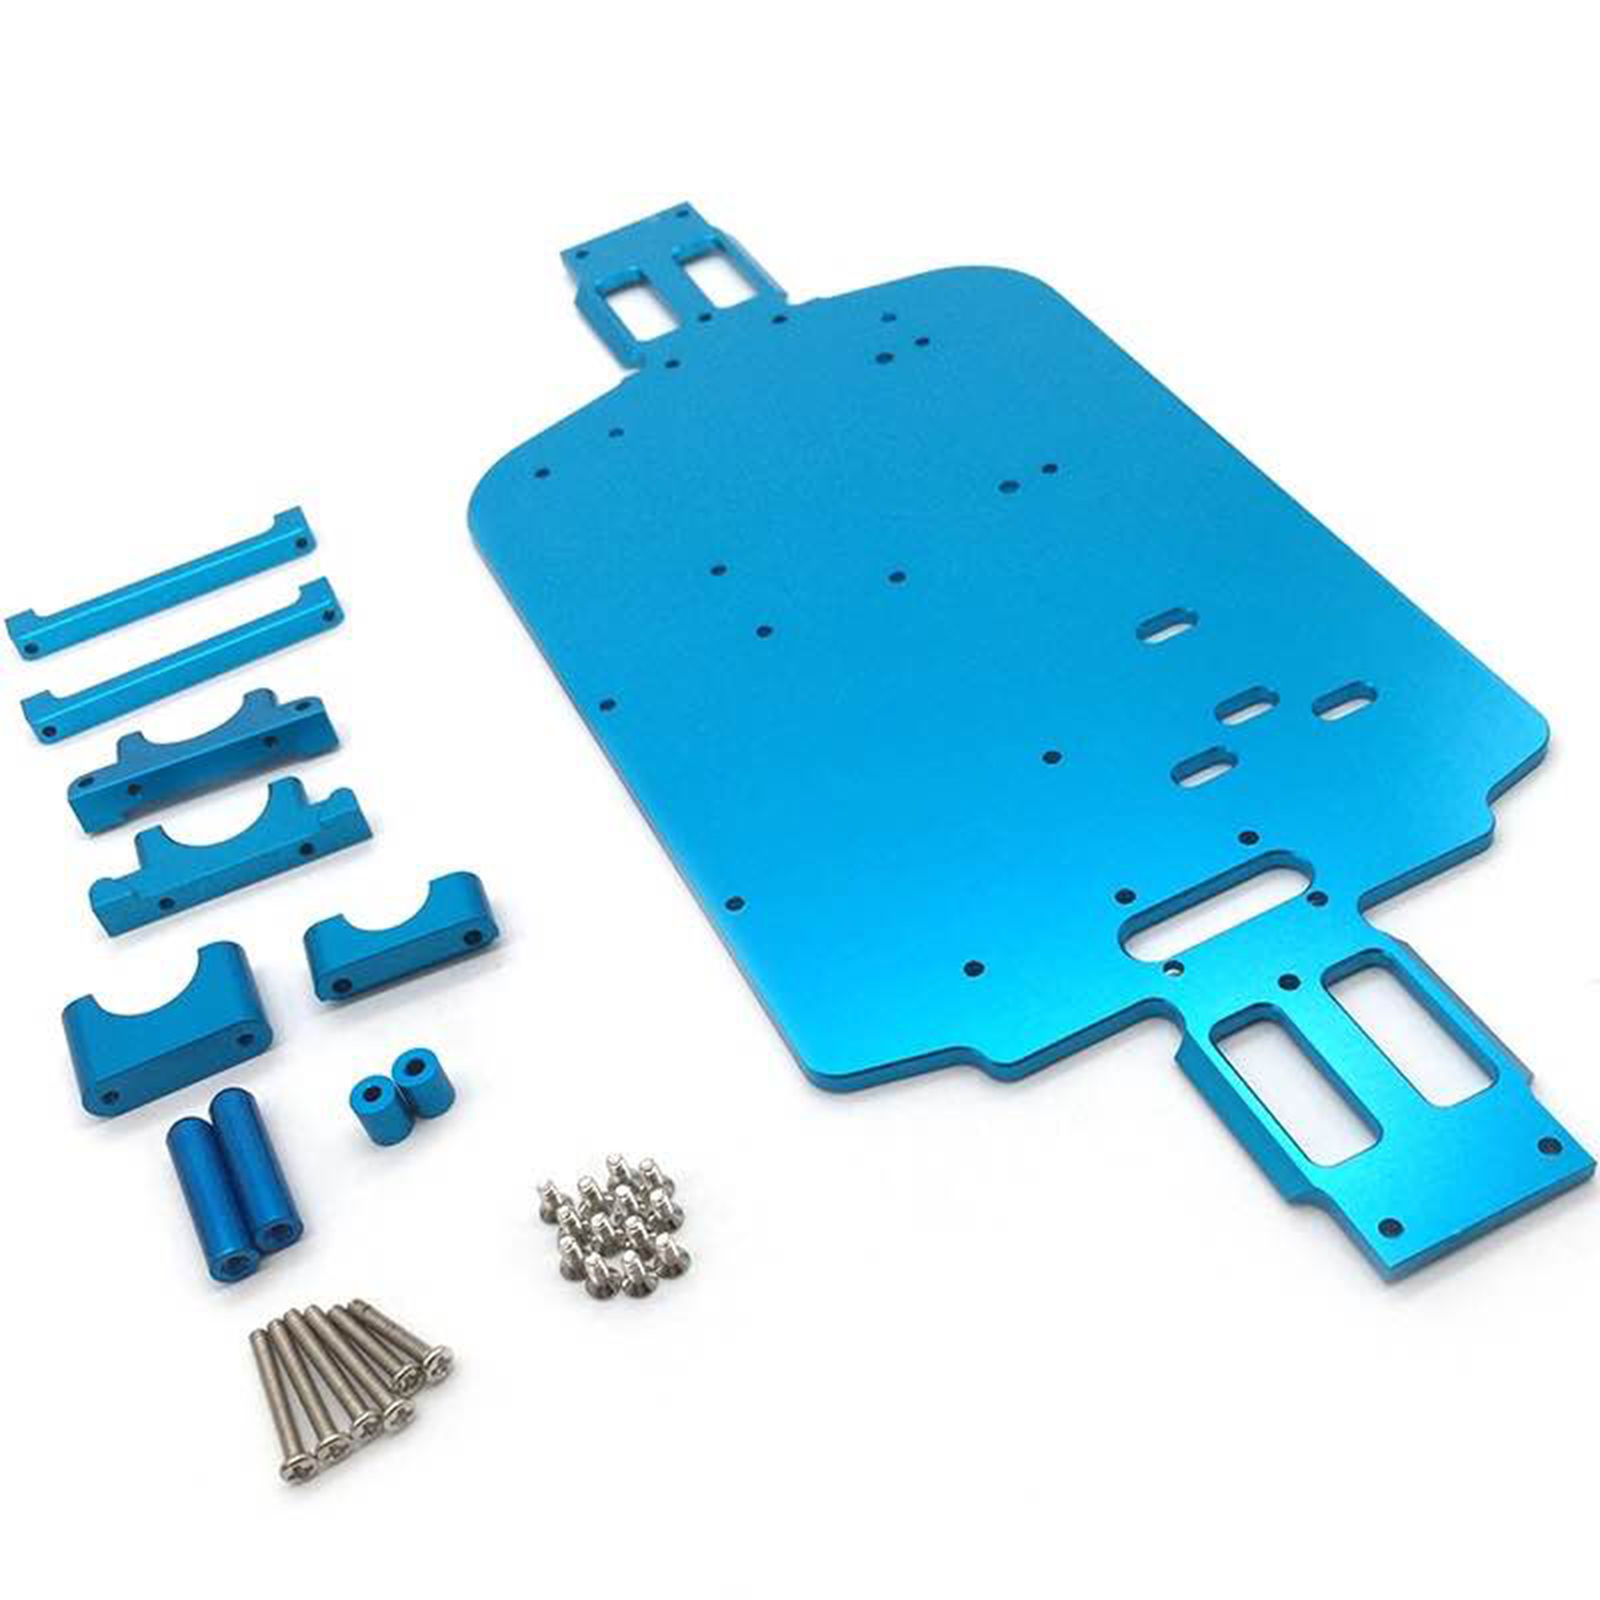 Upgrade Metal Chassis Car Bottom For WLtoys A949 A959-B A969 A979 K929 1/18 RC Car Spare Parts